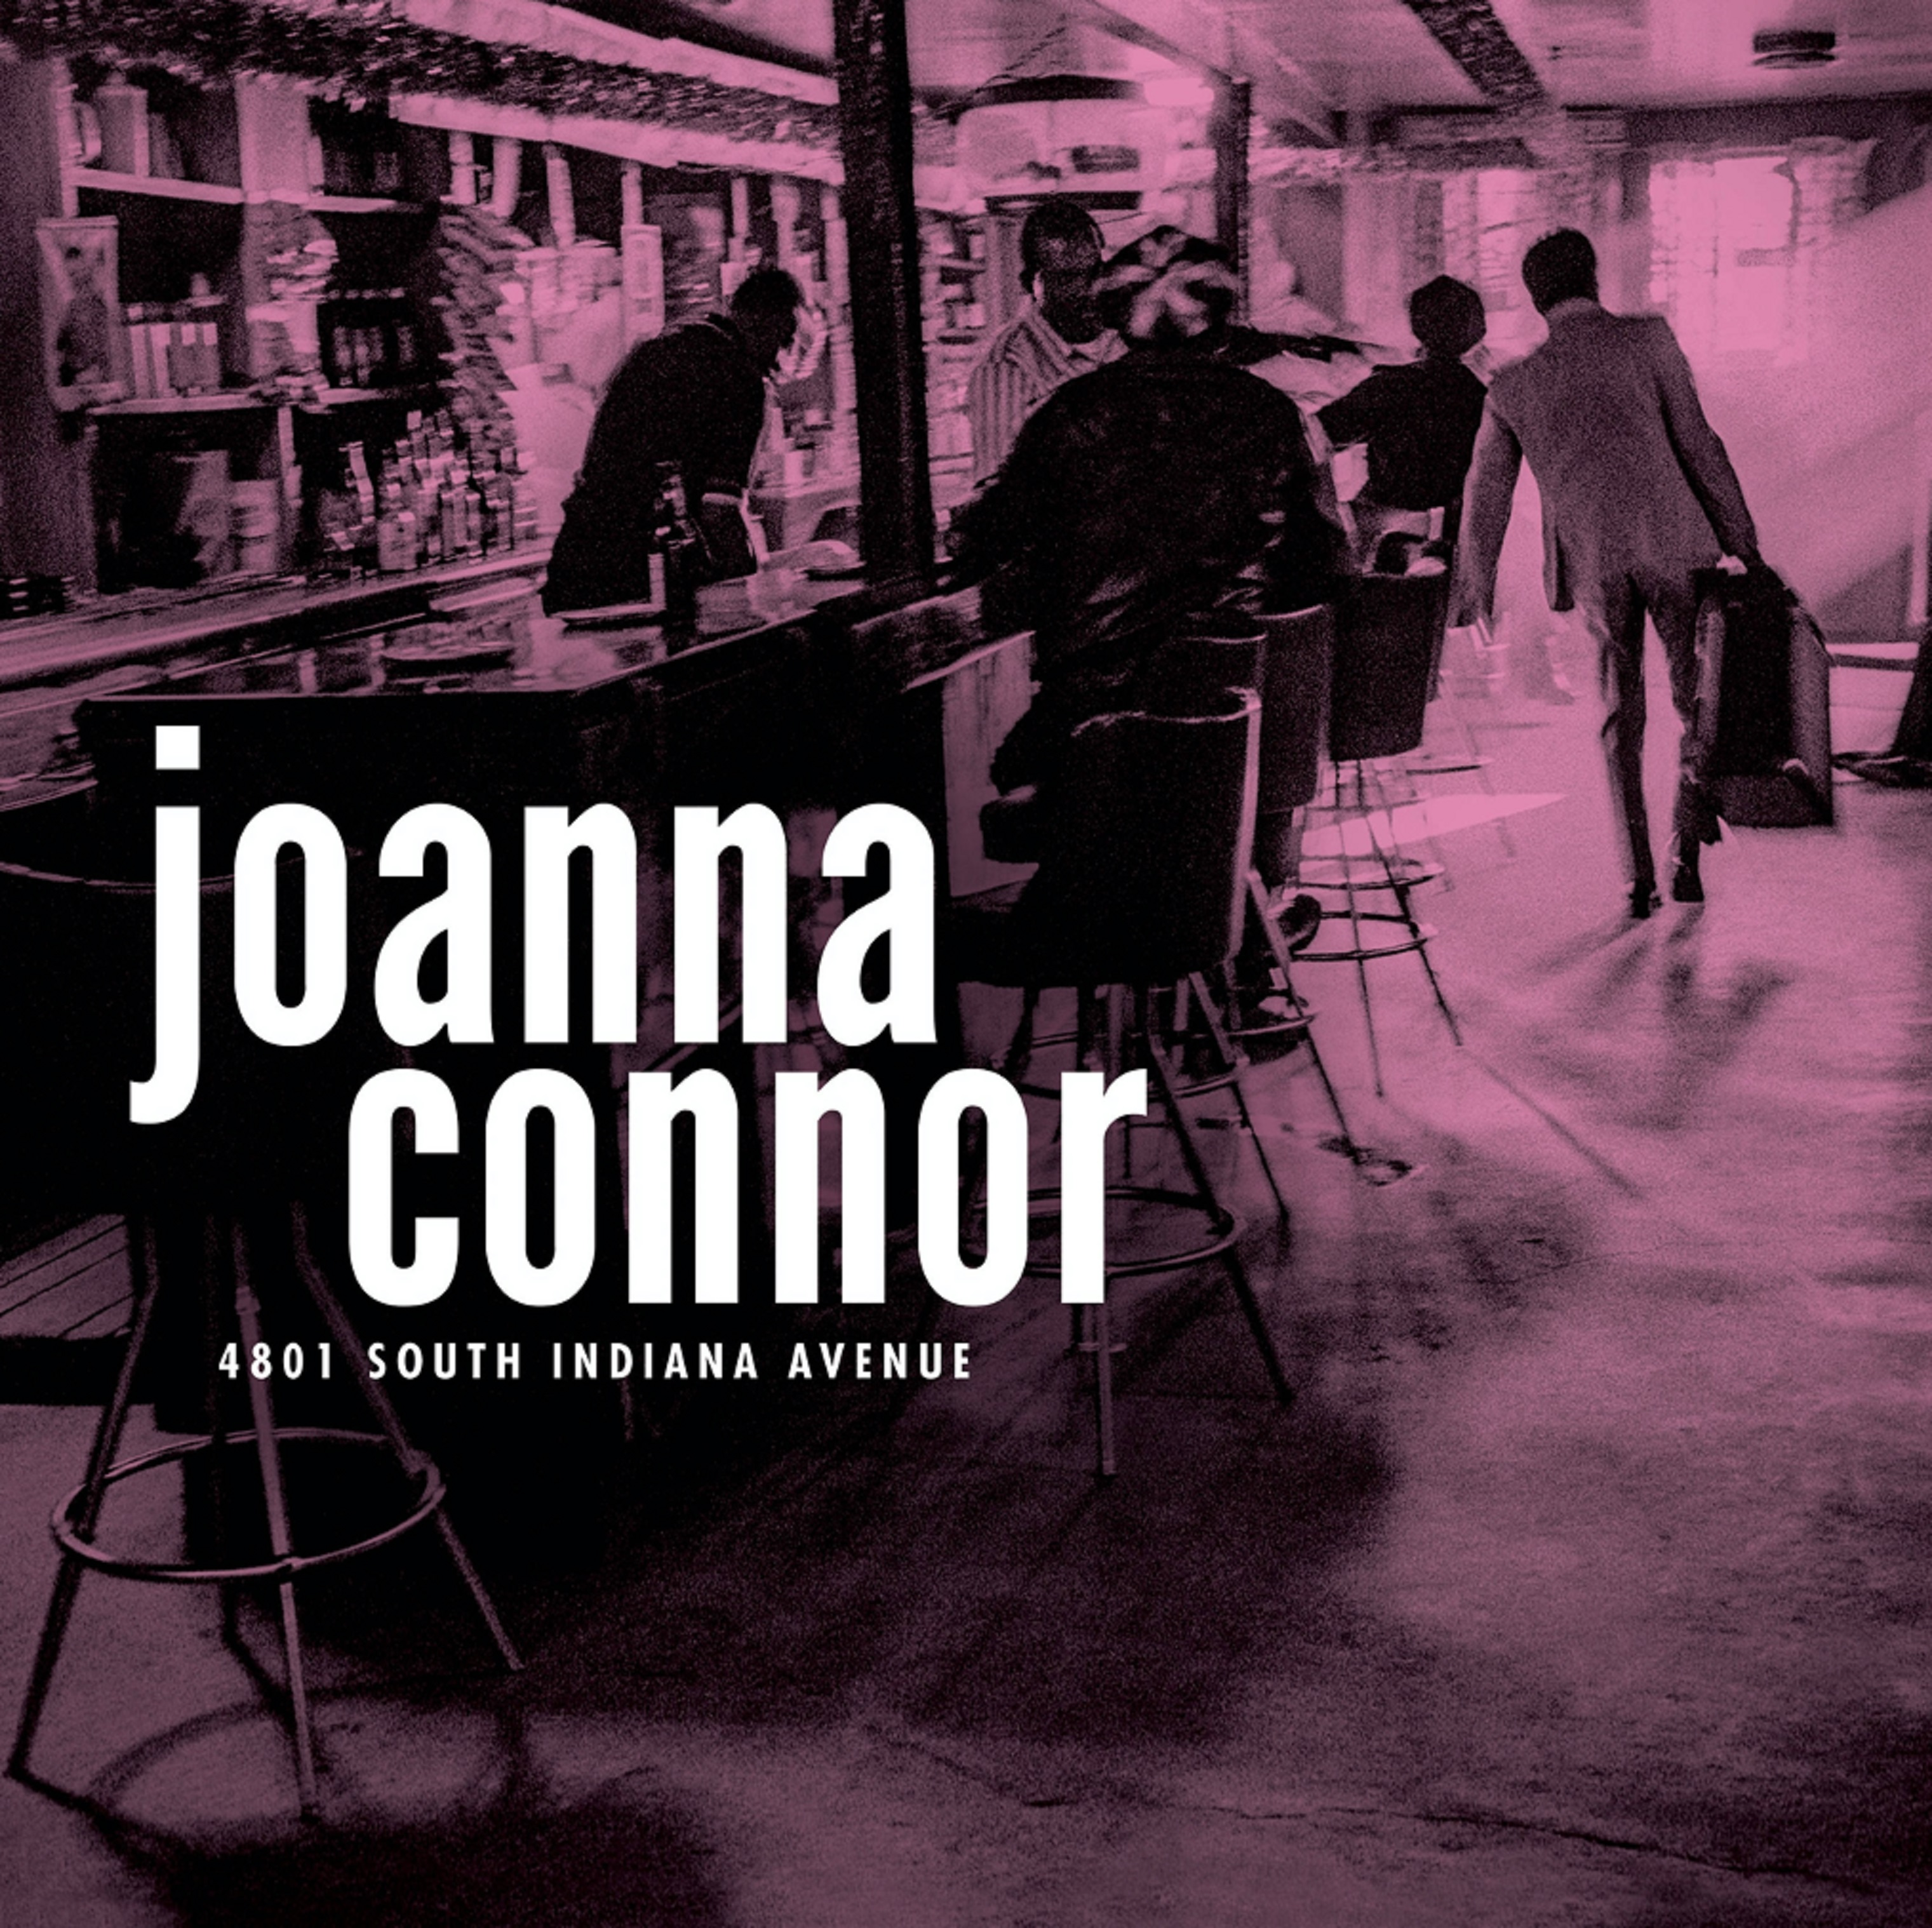 Joanna Connor releases new album '4801 South Indiana Avenue'